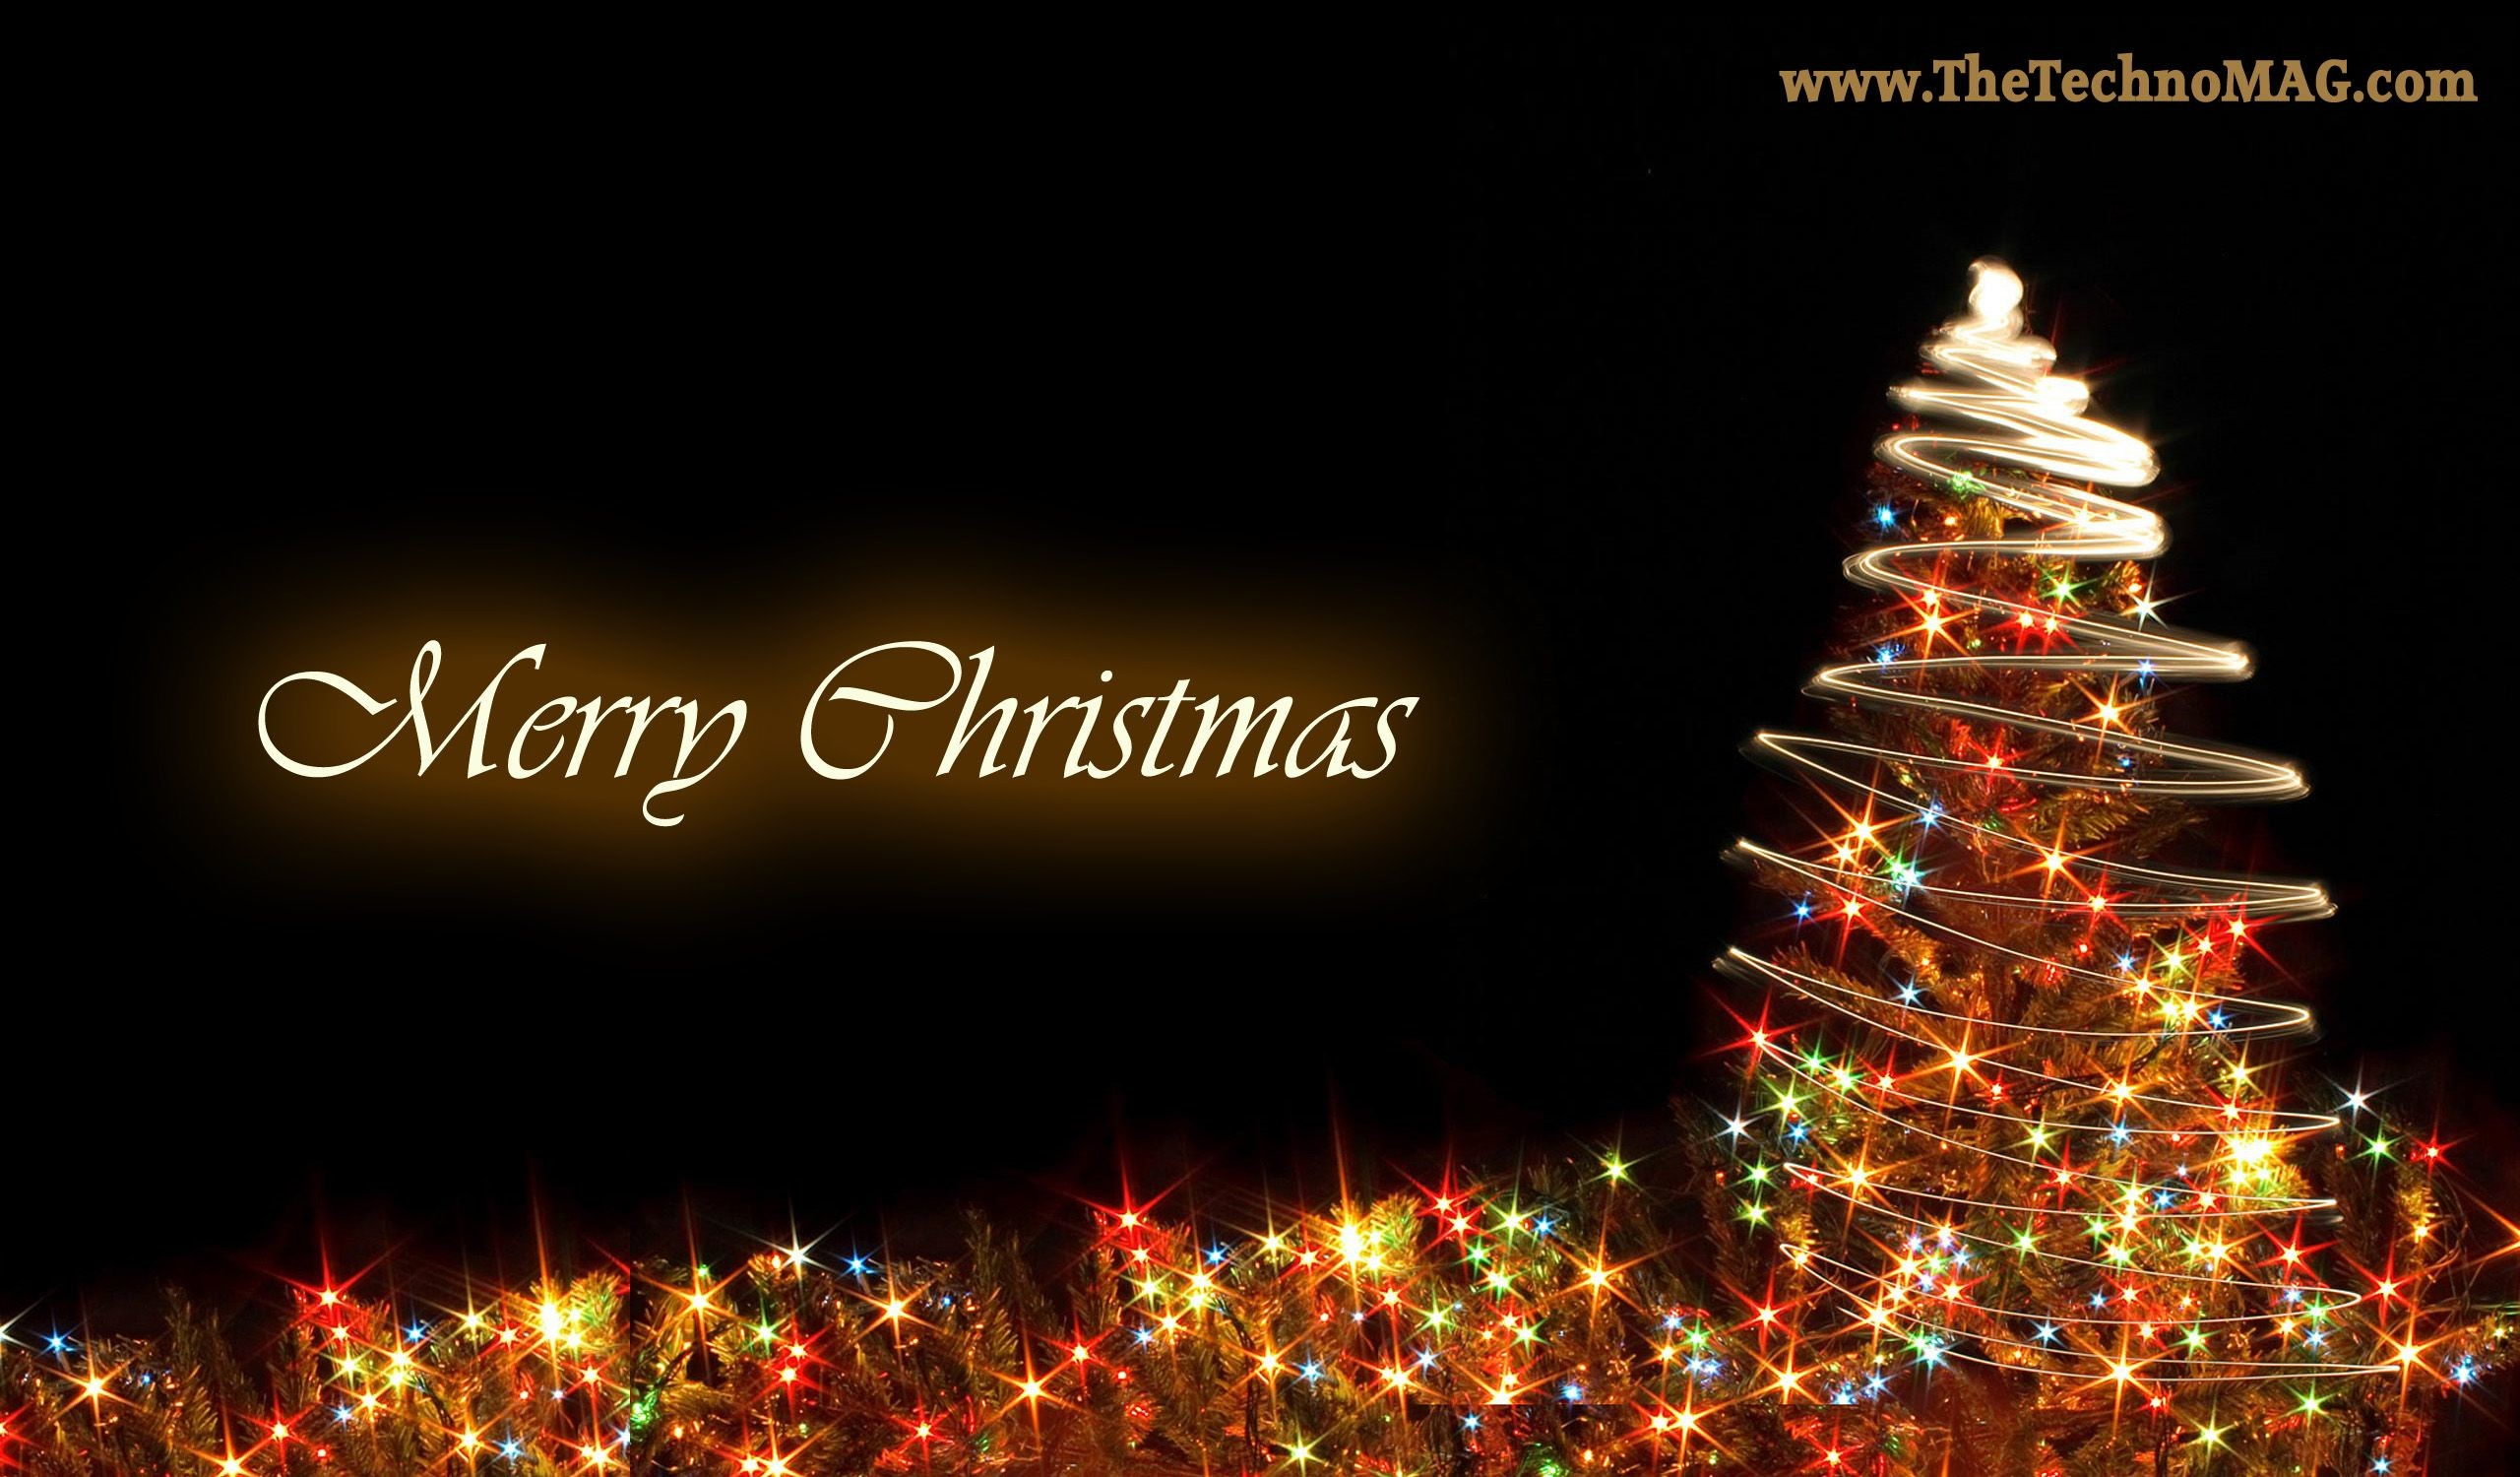 2560x1500 Merry Christmas Wallpapers Hd For Desktop